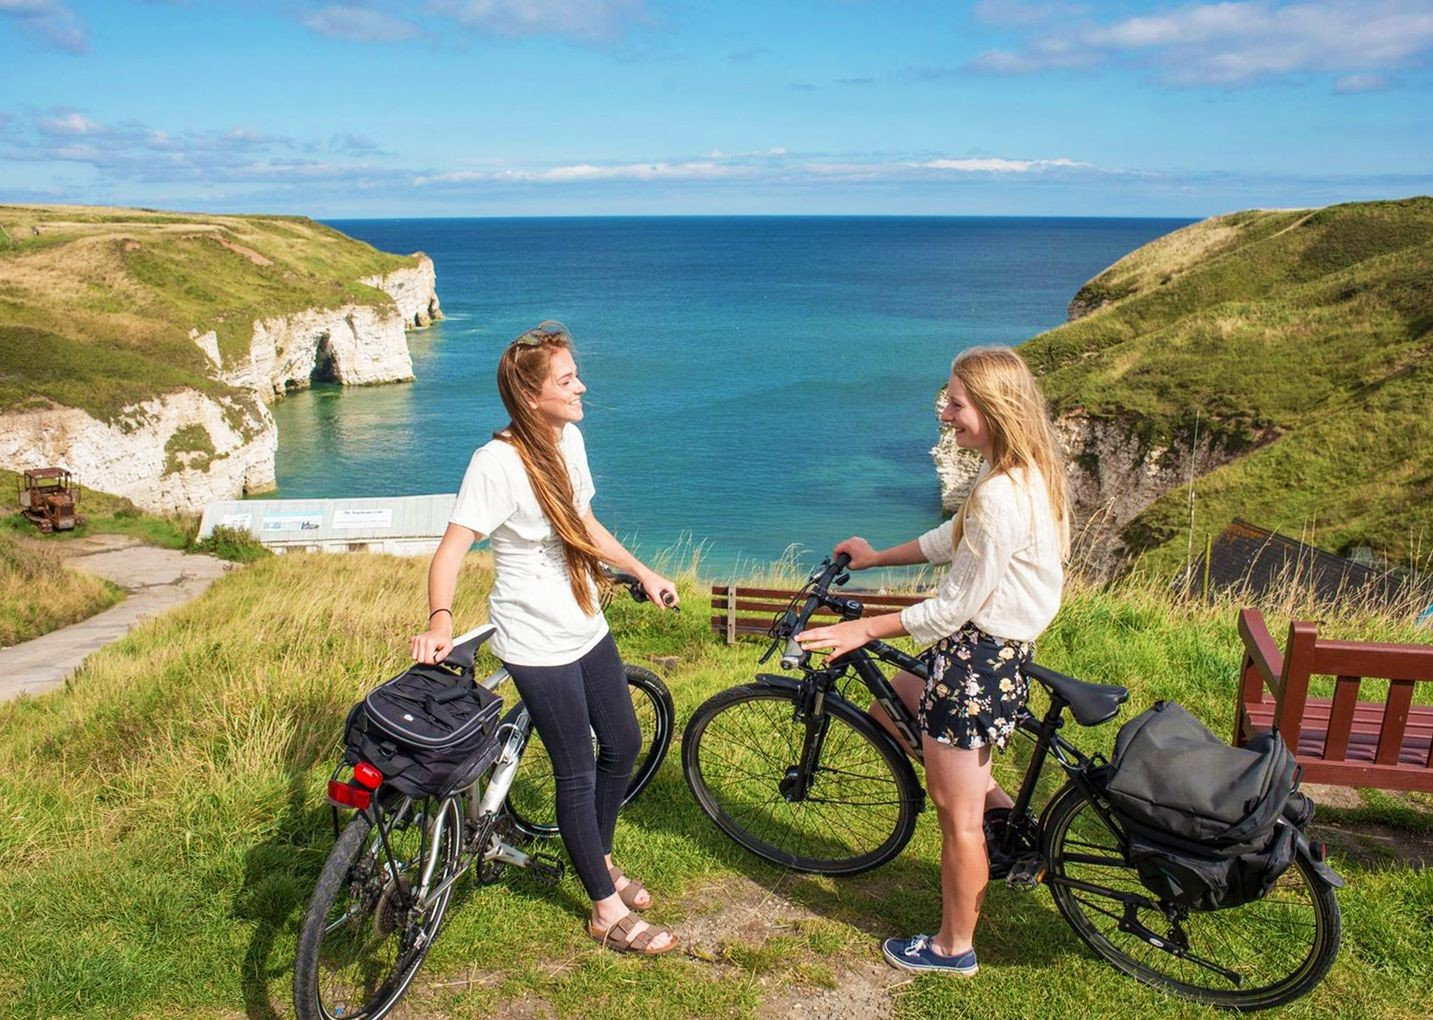 flamborough-cliffs-yorkshire-ride-bike-uk.jpg - NEW! UK - Yorkshire Wolds - Leisure Cycling